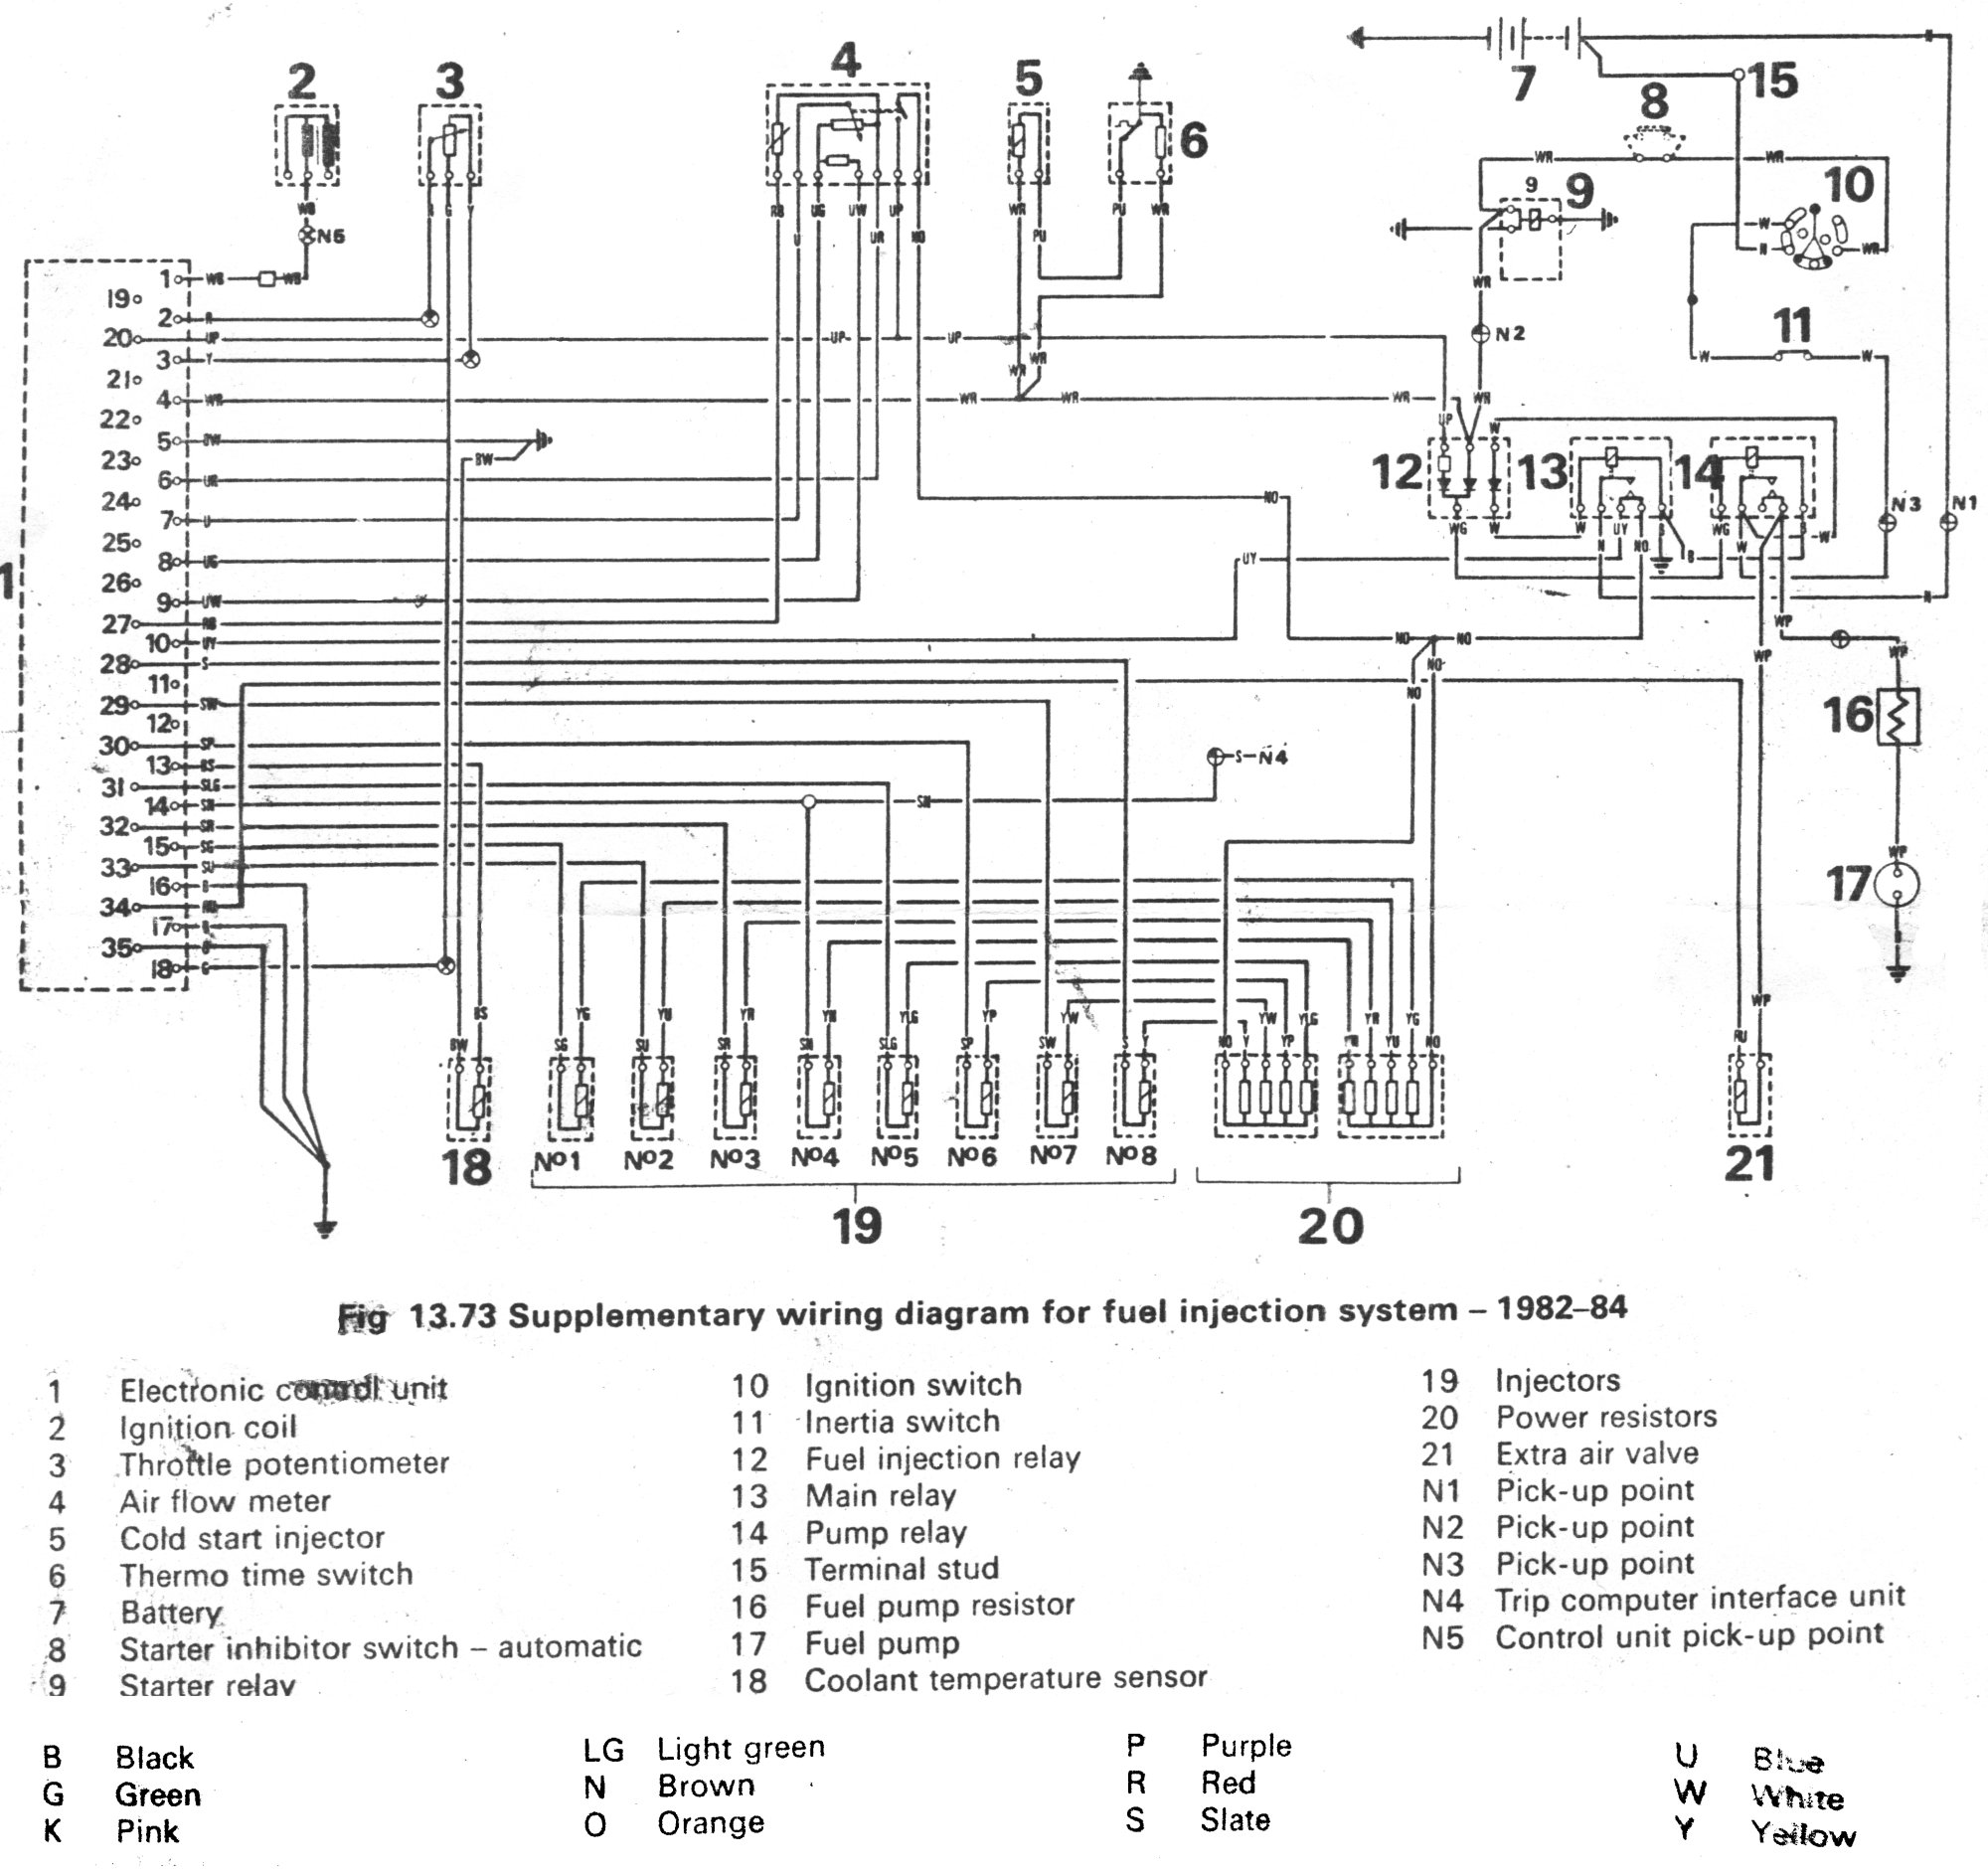 1999 ford ranger xlt fuse box diagram TgqcMDc wiring diagram for car 1998 ford f 150 wiring diagram 1995 ford f150 xlt wiring diagram at nearapp.co